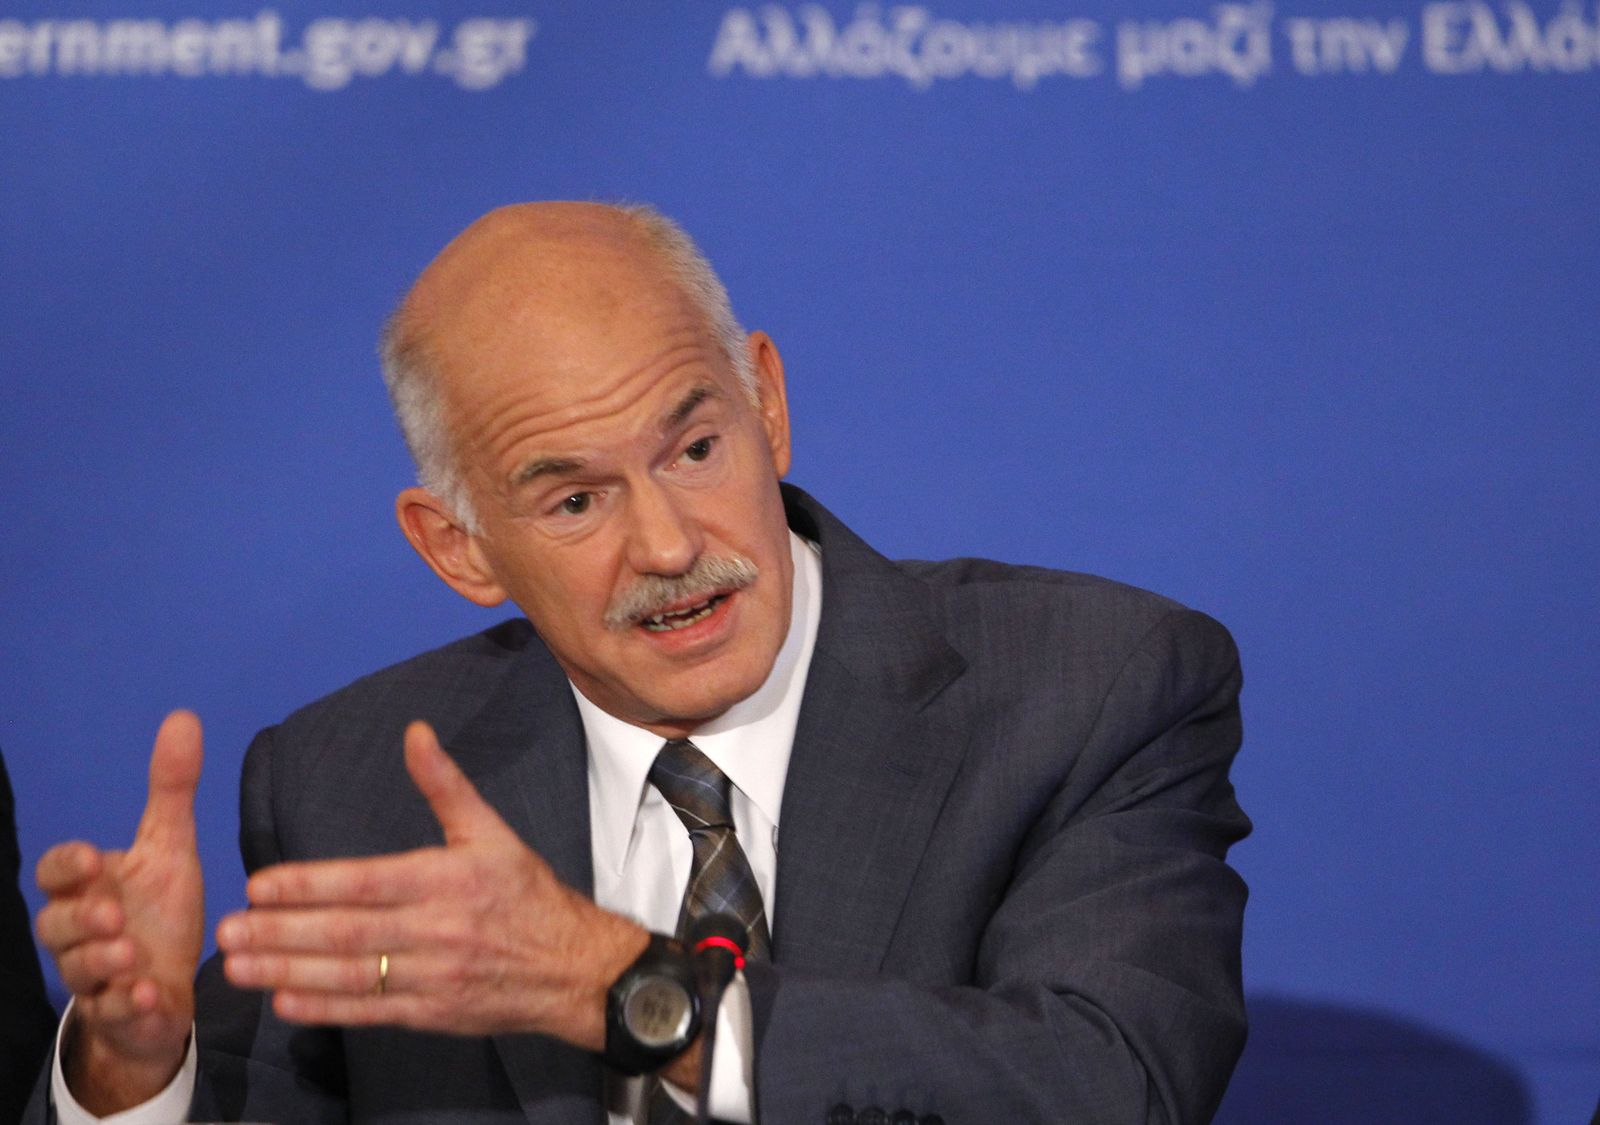 Griechenland/ George Papandreou